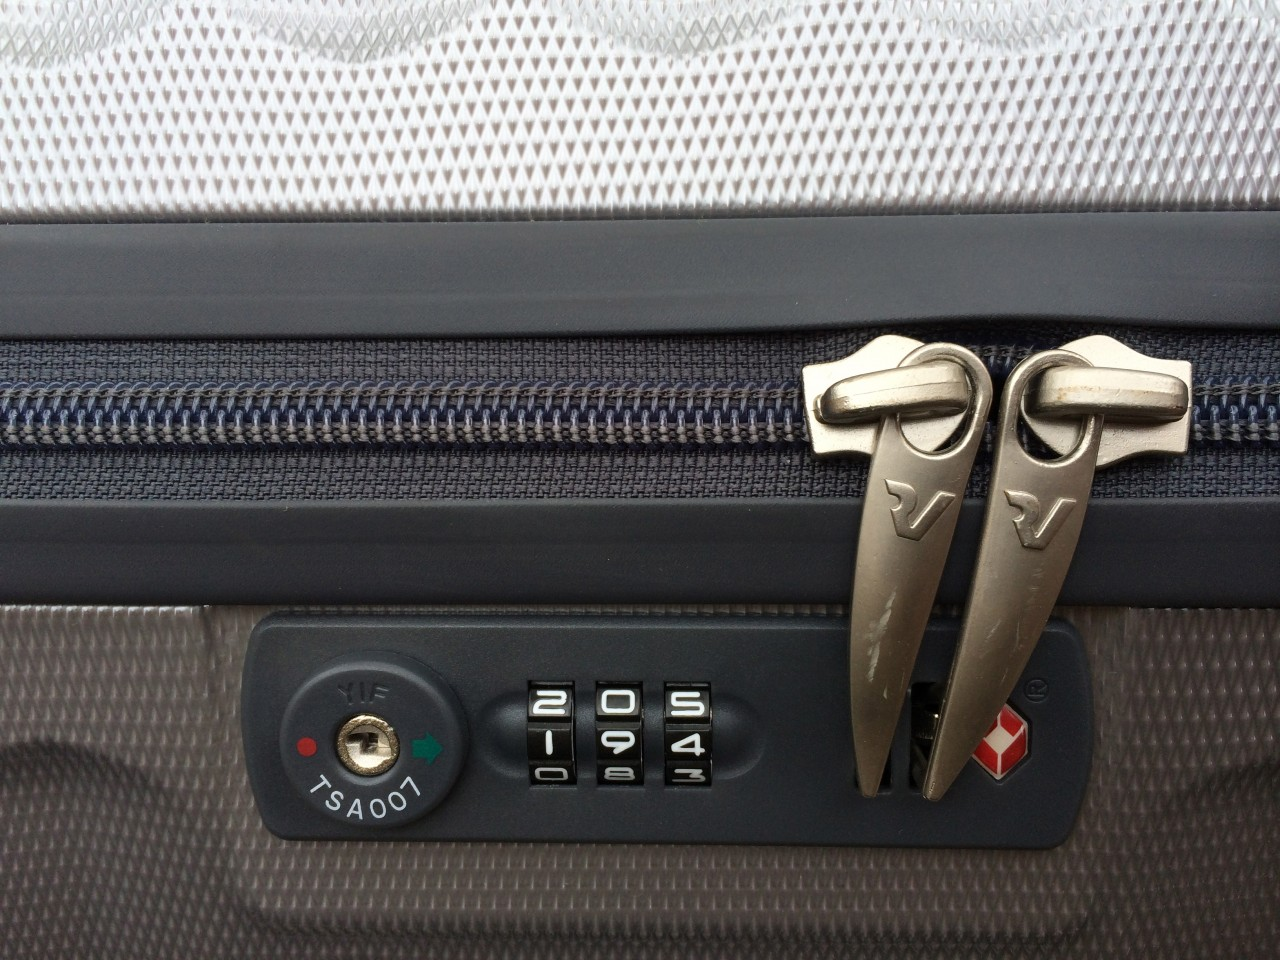 Roncato Luggage Locking System